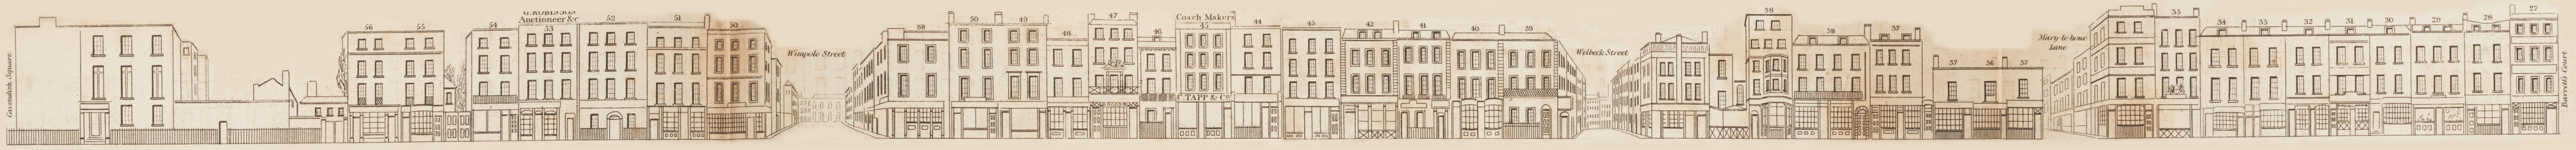 map - Tallis's London street views : No. 50. Wigmore Street, Cavendish Square (south)